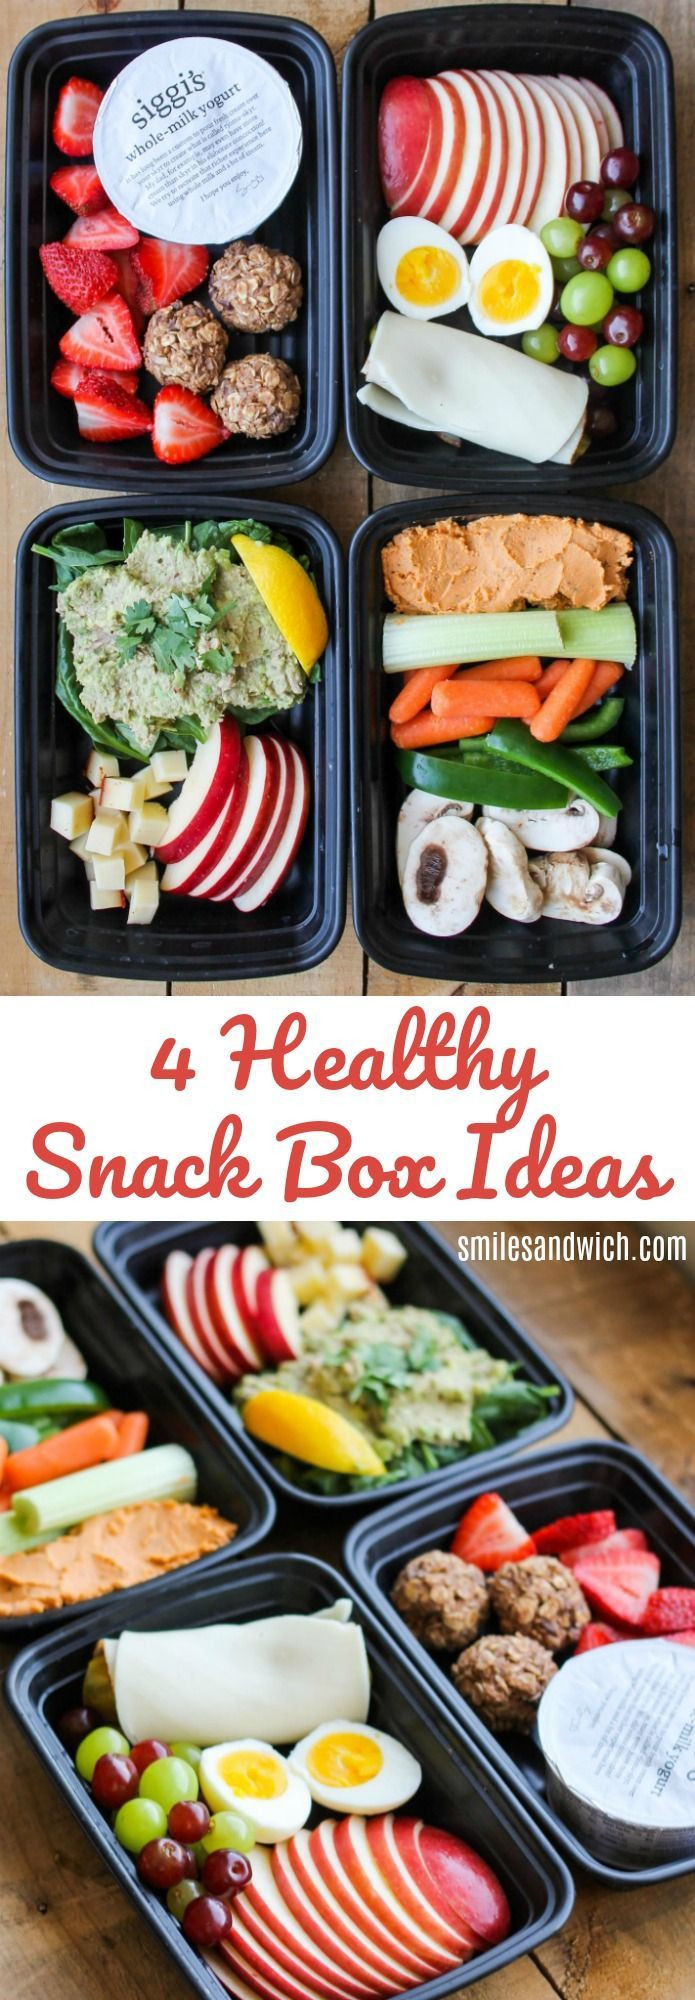 Healthy Carb Snacks  The 25 best No cook appetizers ideas on Pinterest